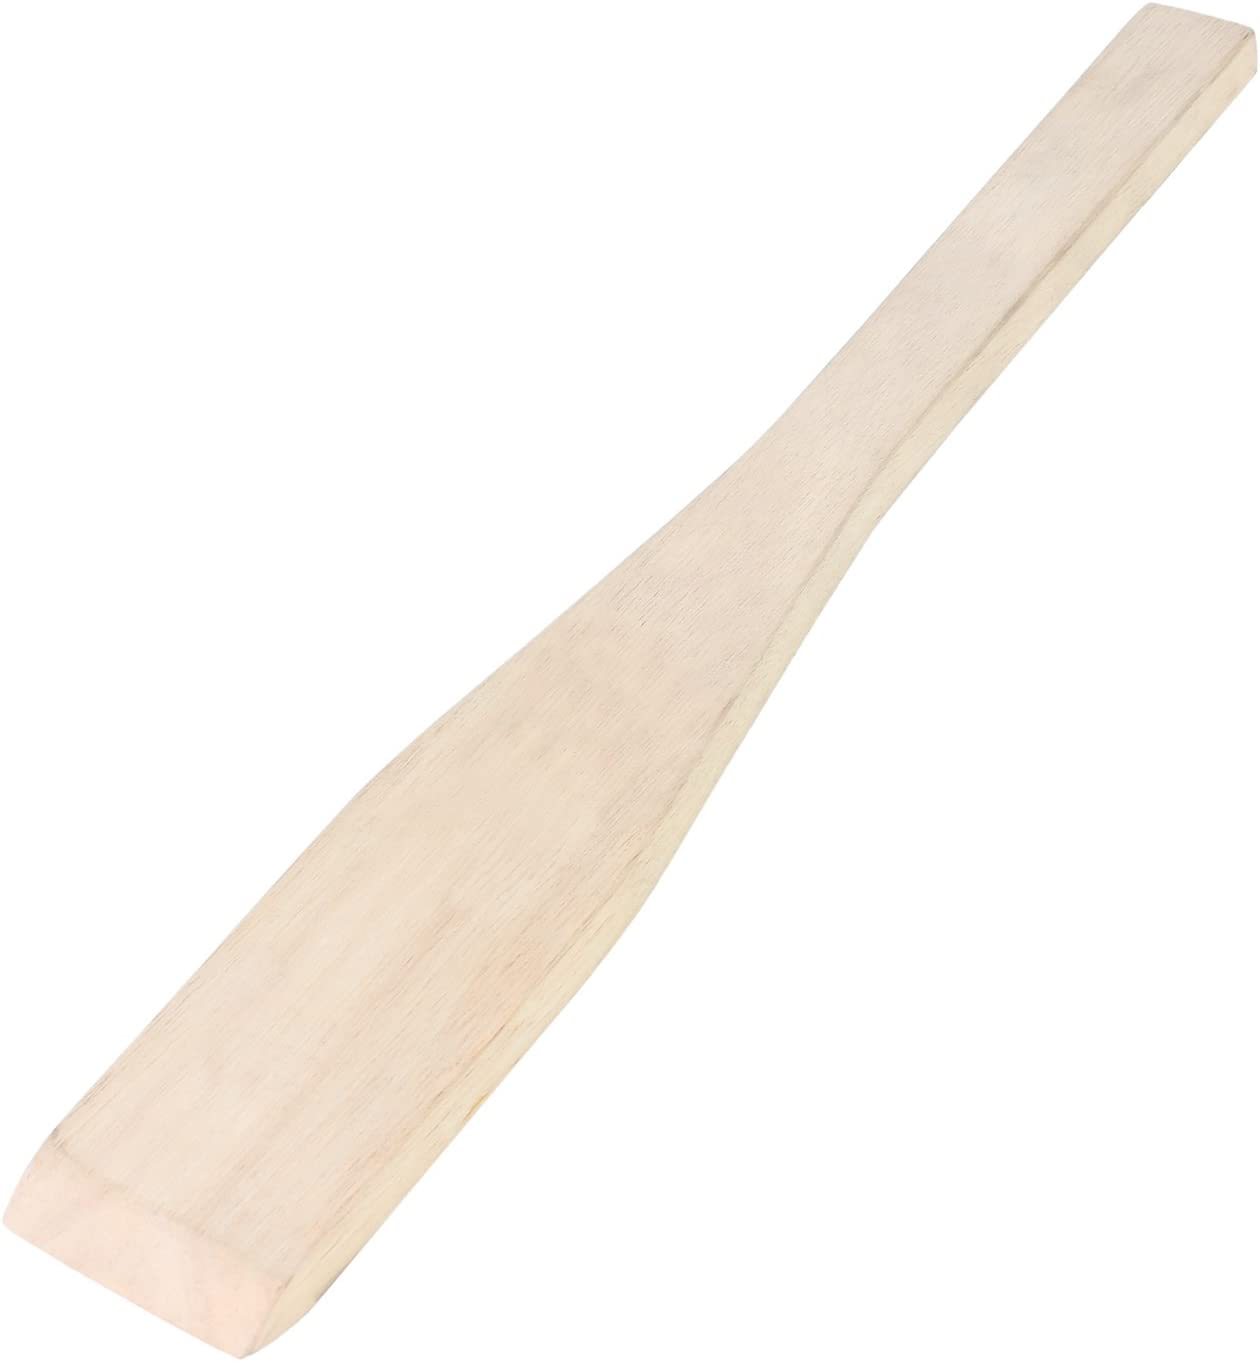 Excellante 20-Inch Wood Mixing Paddles 61xSzPKKrML